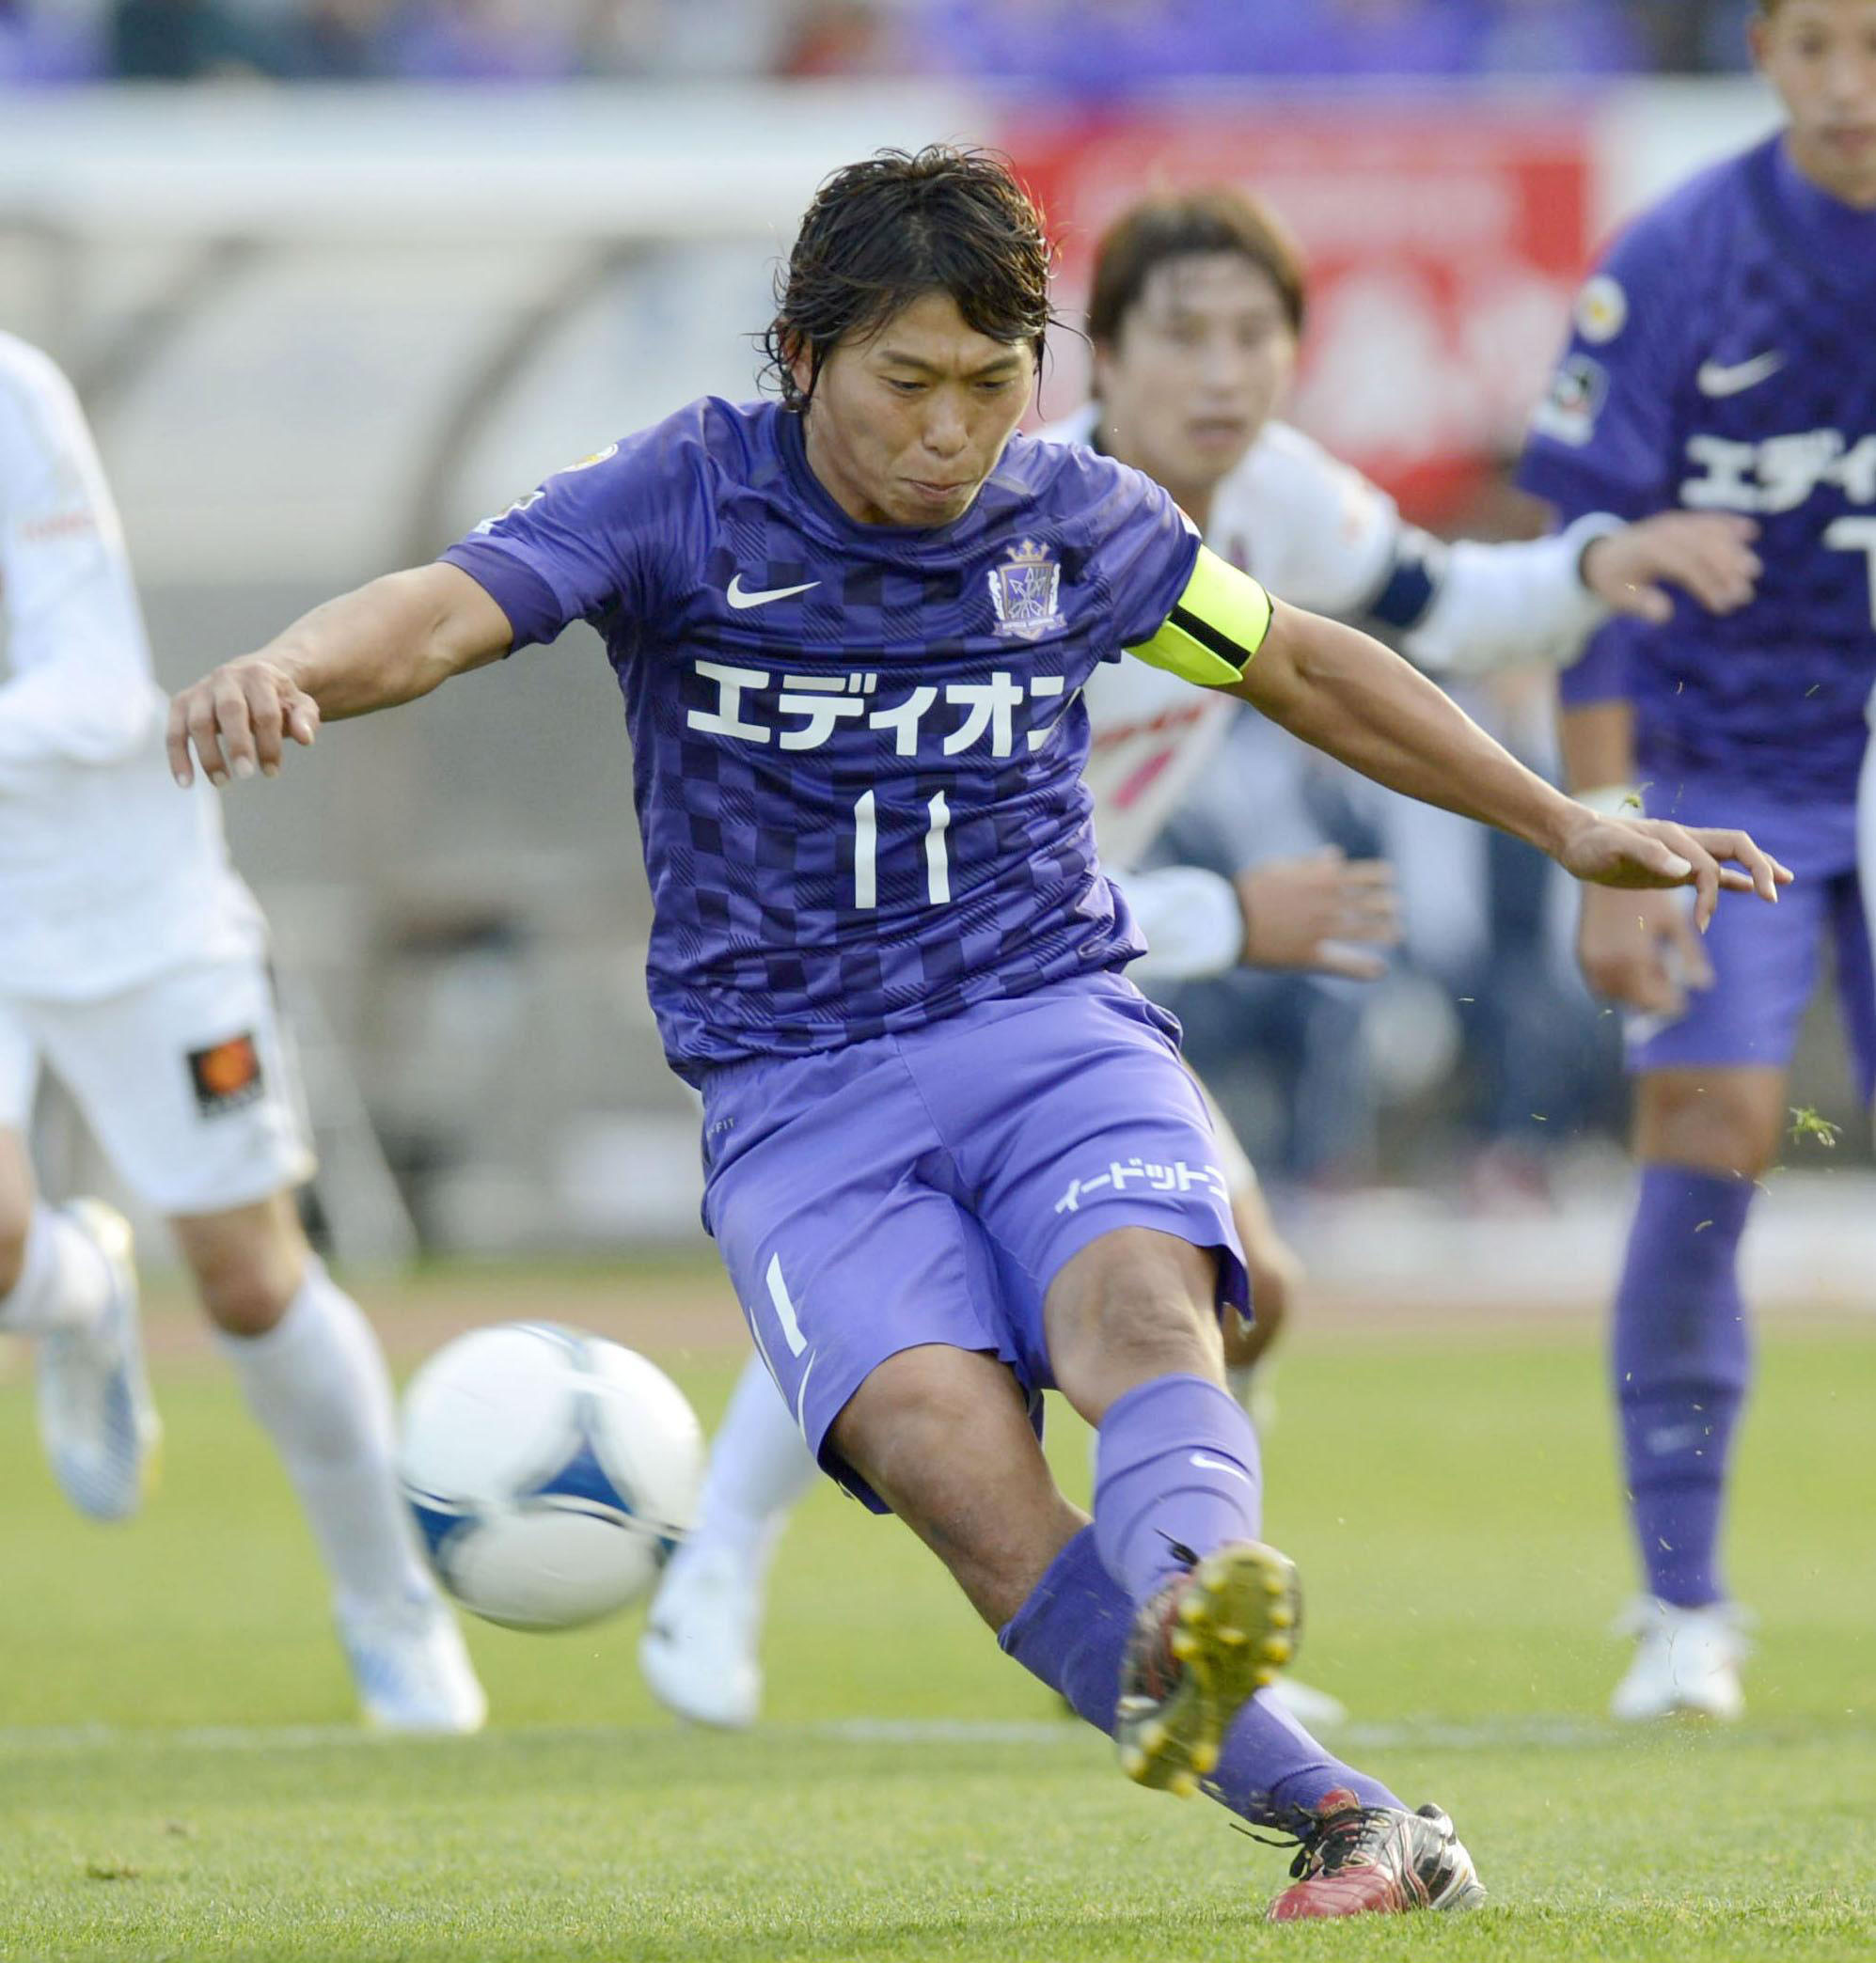 Dream come true: Sanfrecce Hiroshima captain Hisato Sato scores his side's third goal against Cerezo Osaka from the penalty spot on Saturday afternoon. Sanfrecce won 4-1. | KYODO